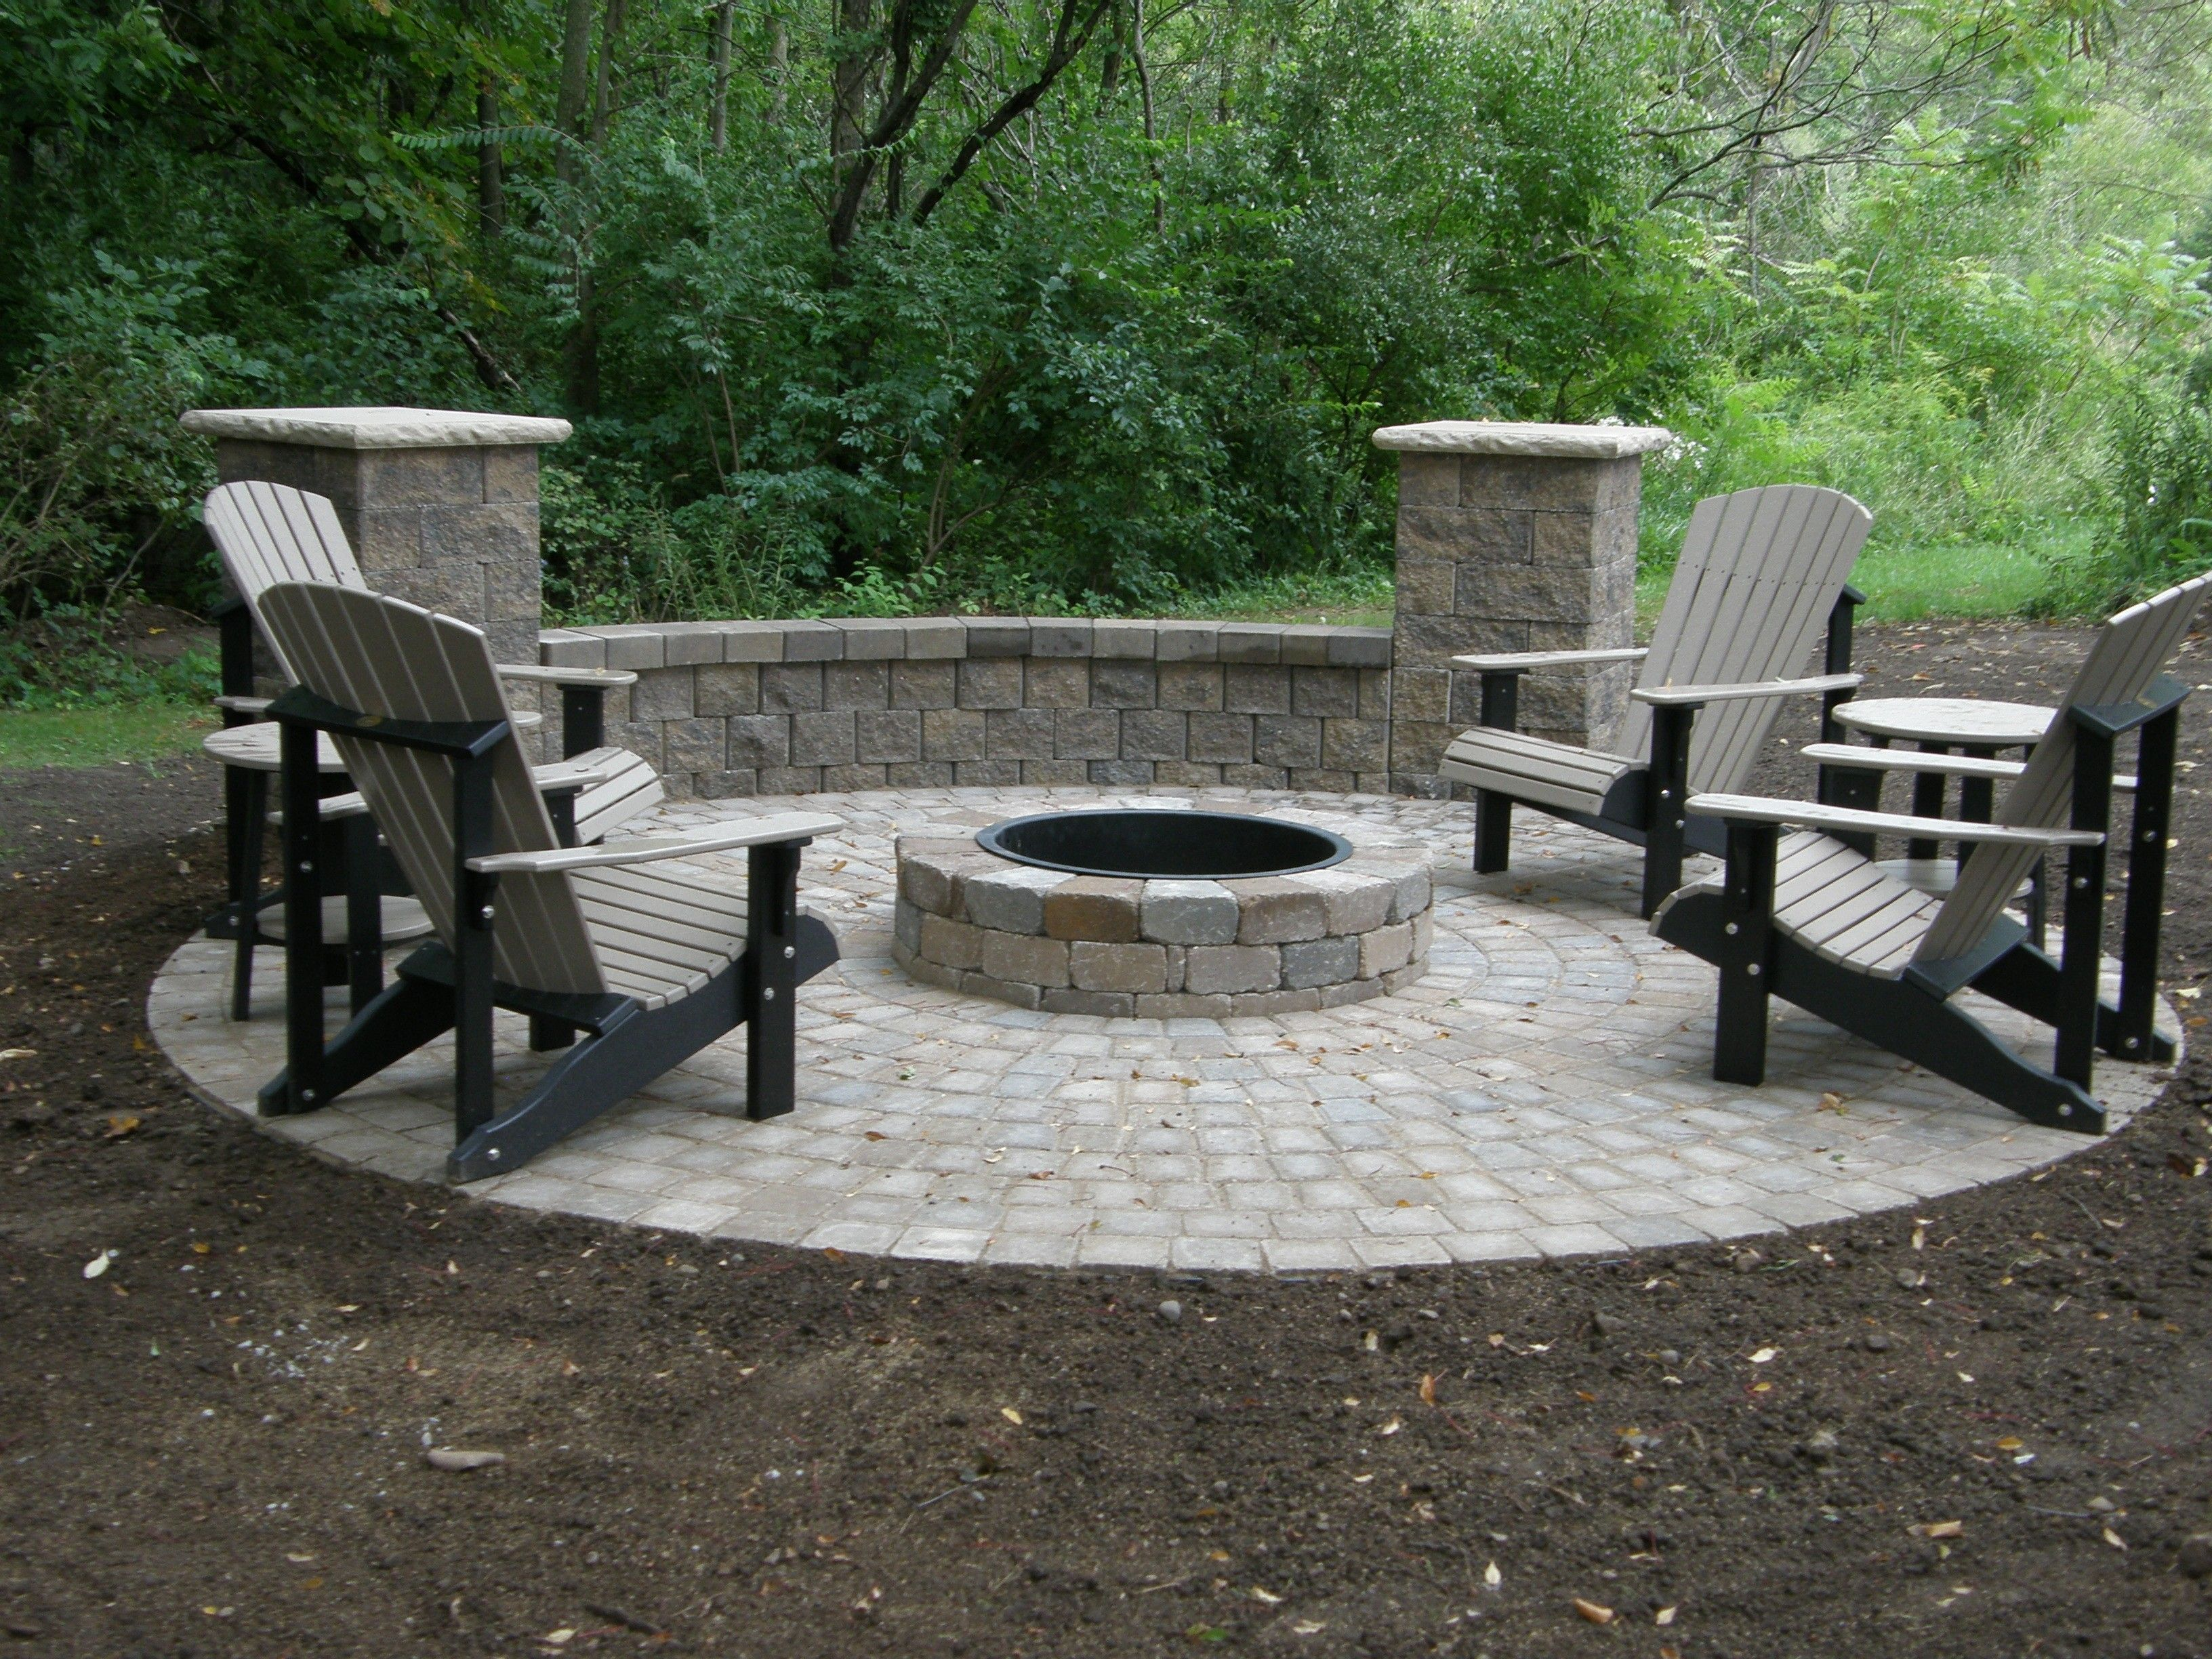 Circular Paver Patio We Assume This Would Increase Cost Due To